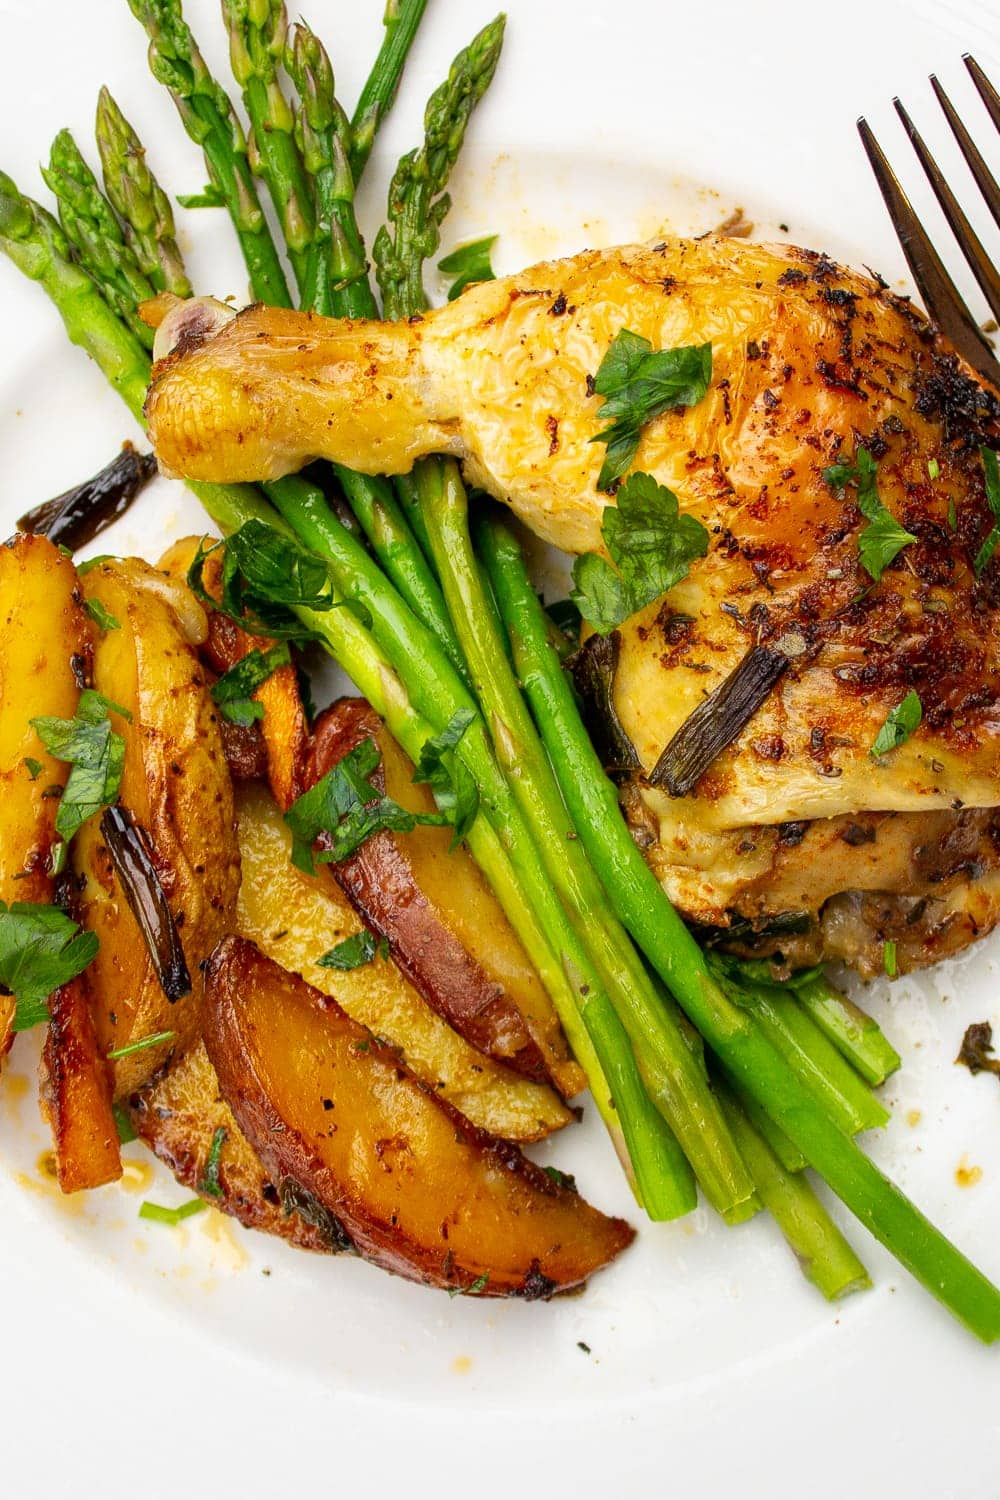 chicken quarter leg with asparagus and potatoes on plate p